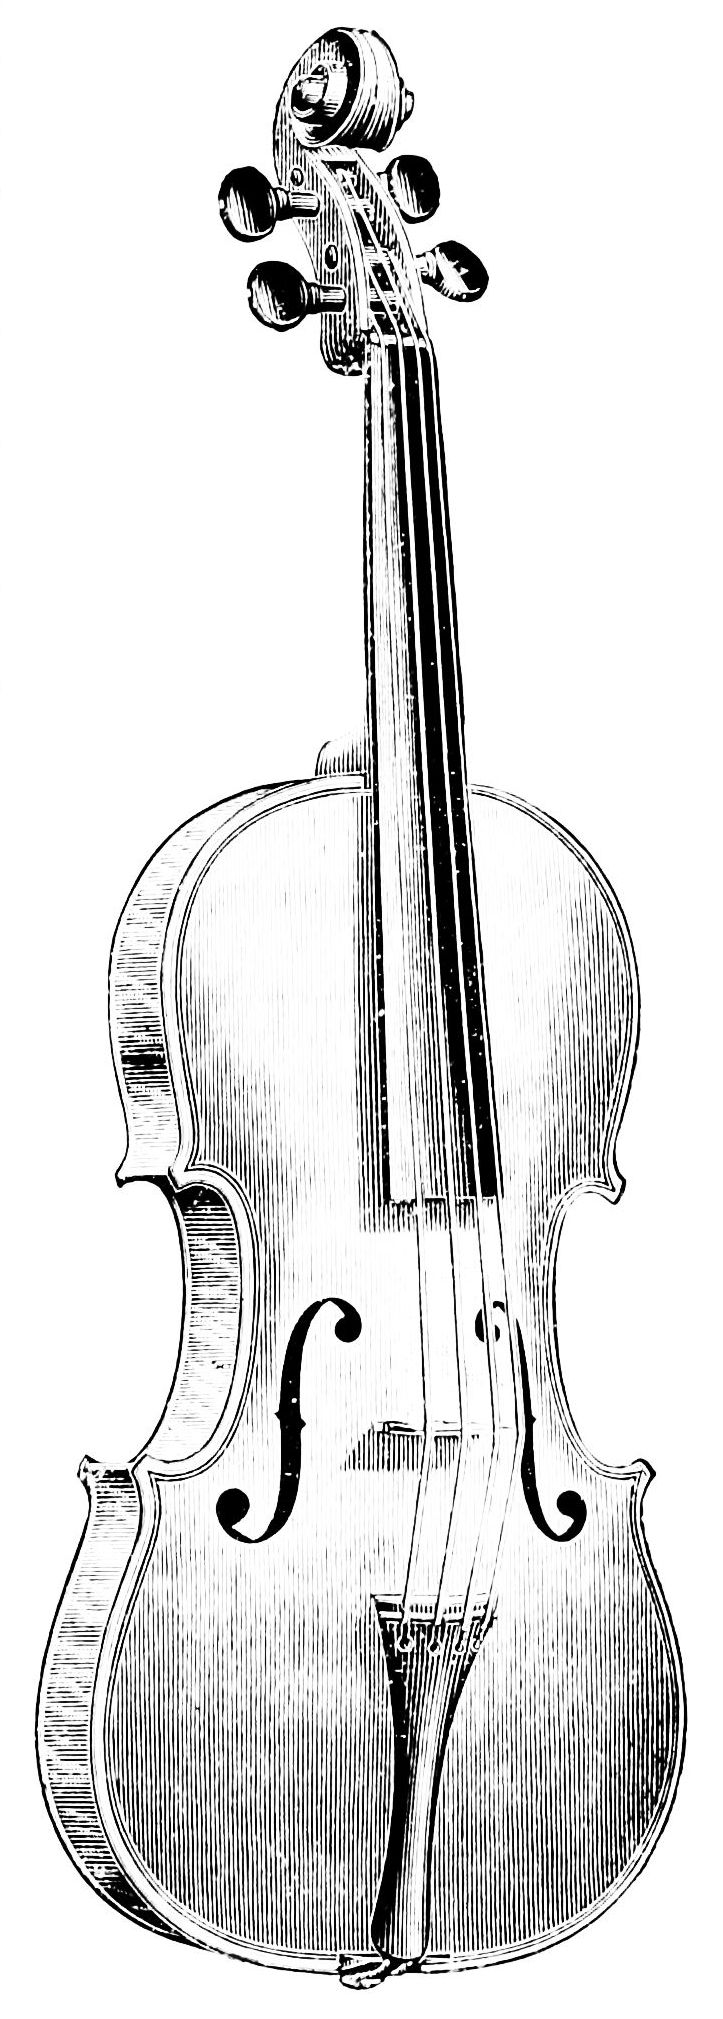 PSM V40 D817 Amati model violin.jpg